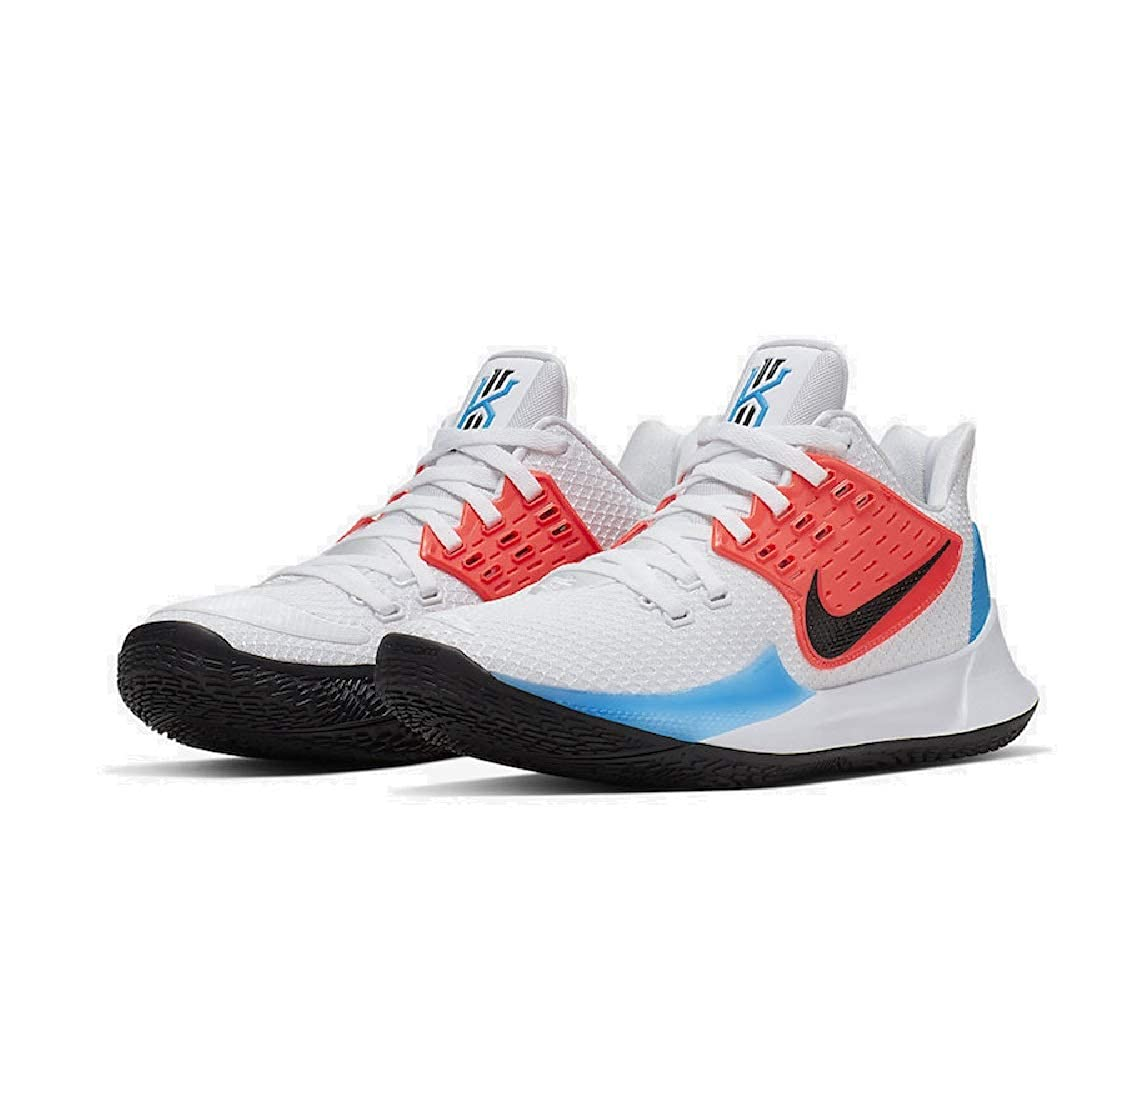 the best attitude 437c3 b4c81 Amazon.com | Nike Kyrie 2 Low White Blue Crimson AV6337-100 ...